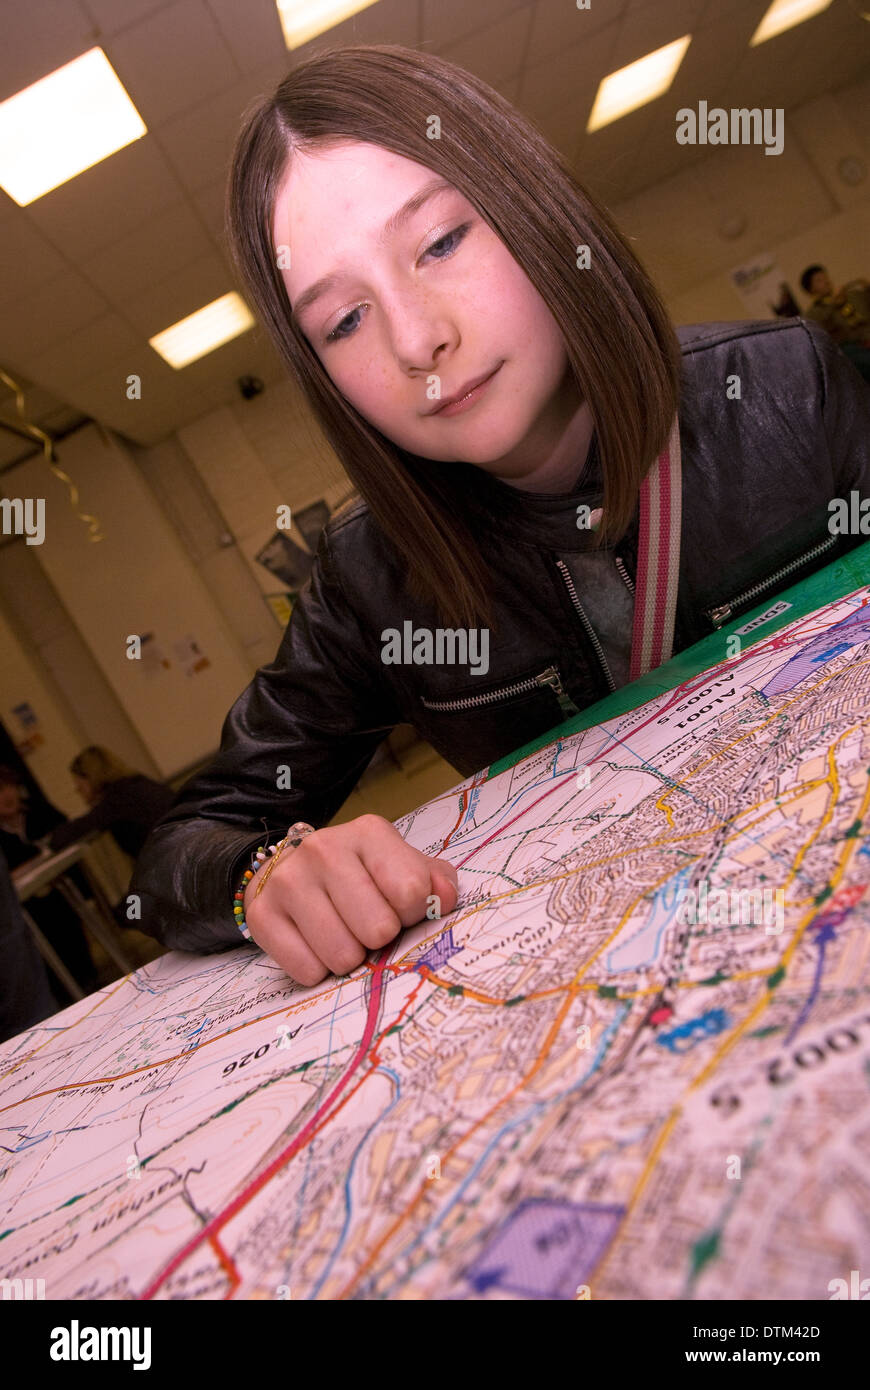 Young girl (12 years old) at a youth event perusing local town plan map as a way to engage young people with local community - Stock Image